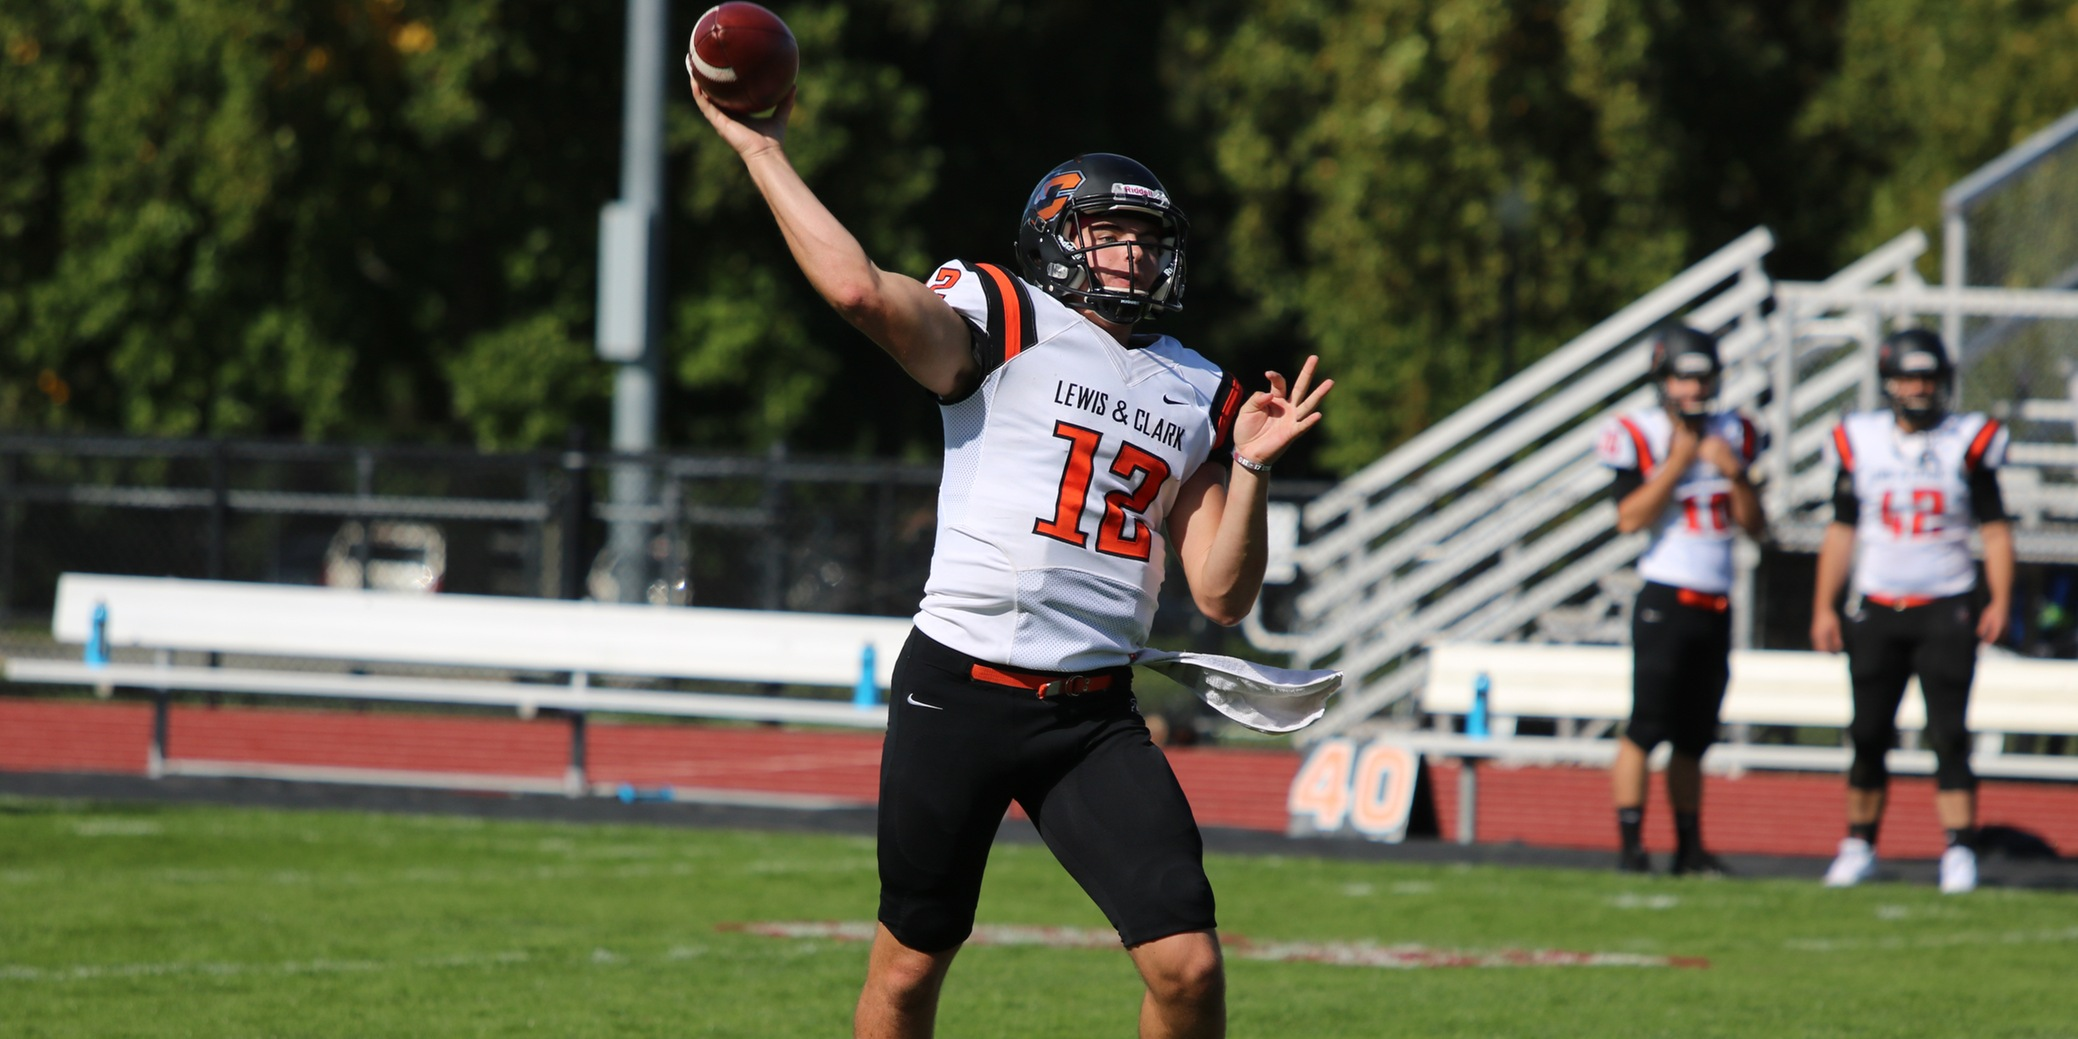 Lewis & Clark's momentum halted in loss at Puget Sound